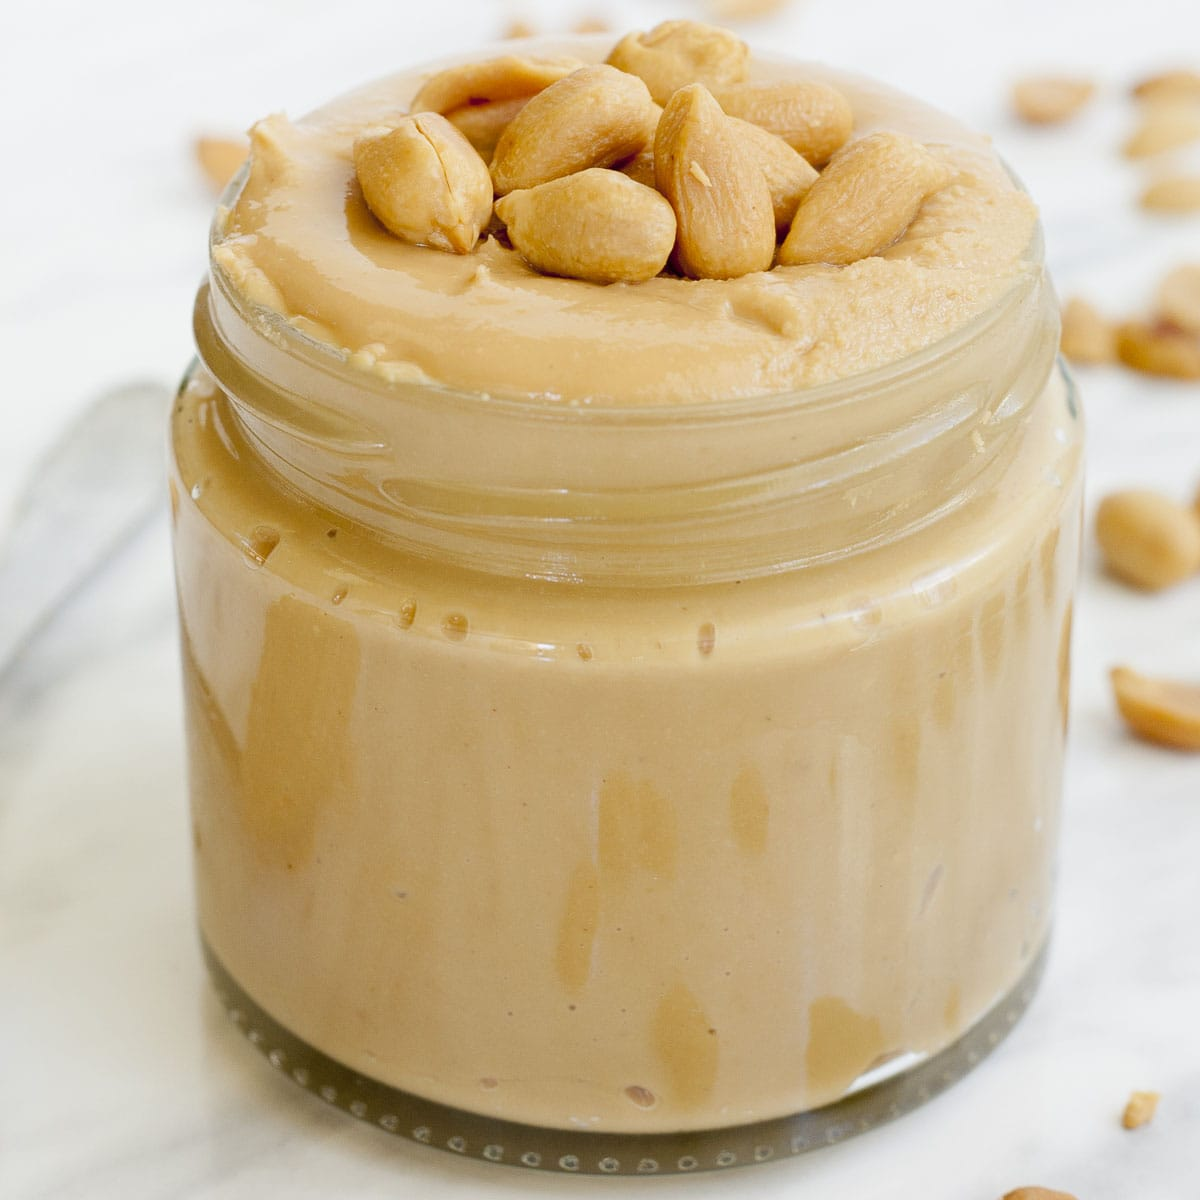 Close-up of a jar full of homemade peanut butter topped with peanuts